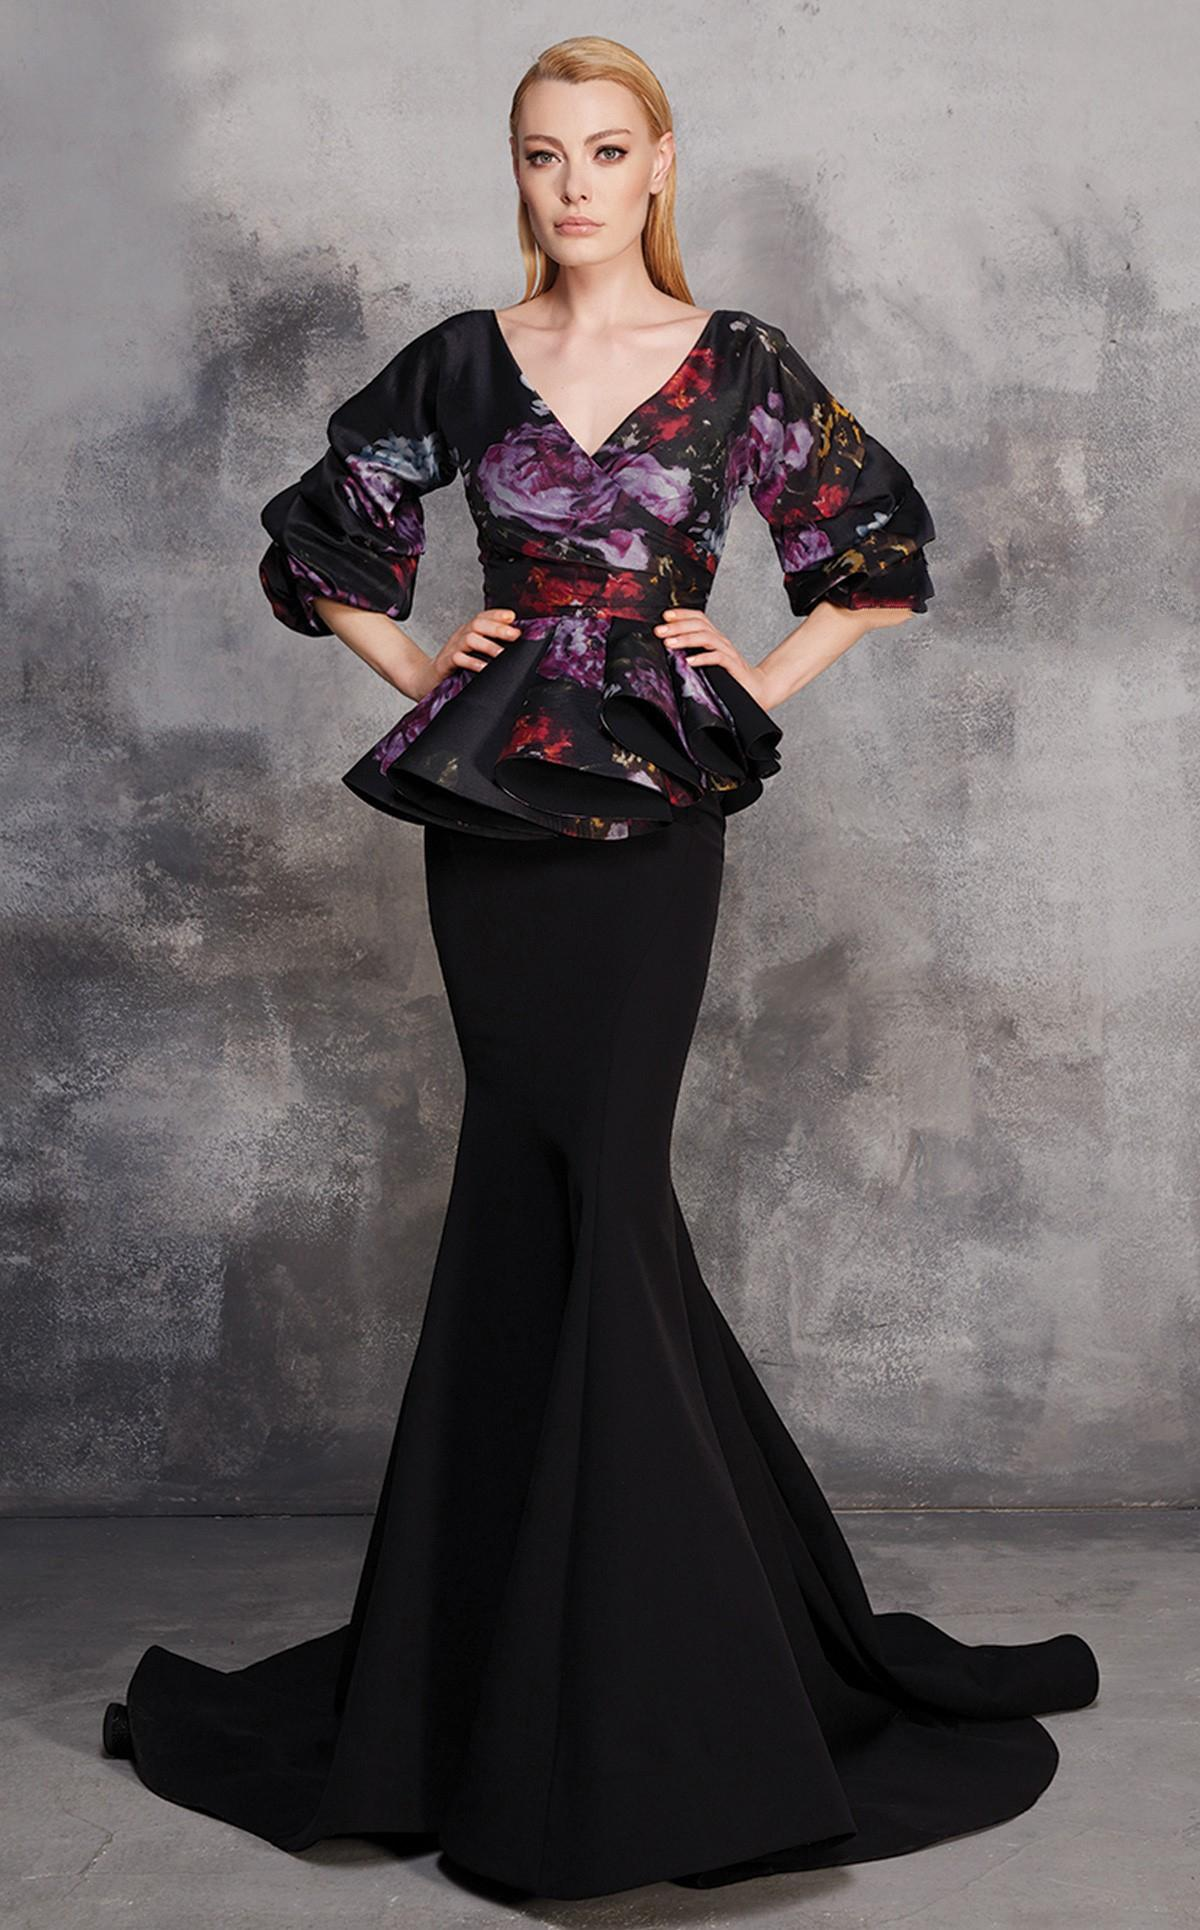 Lyst - Mnm Couture Black Floral Peplum Evening Gown in Black